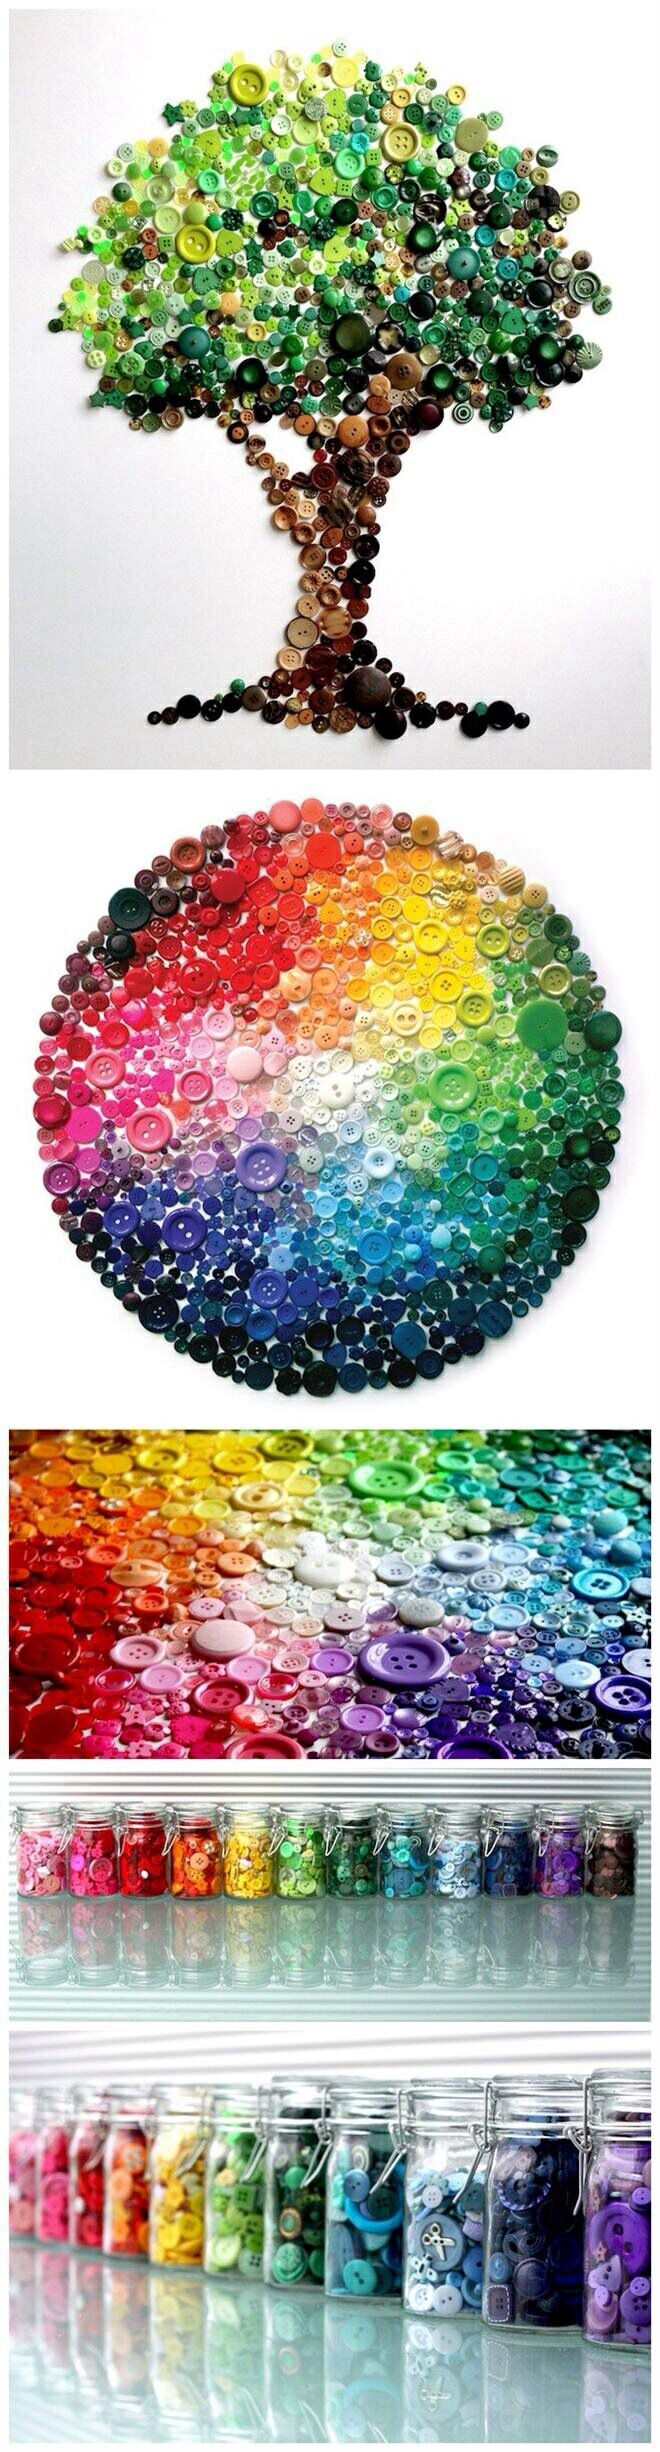 #art #colours #buttons - this is such a neat artsy/crafty idea